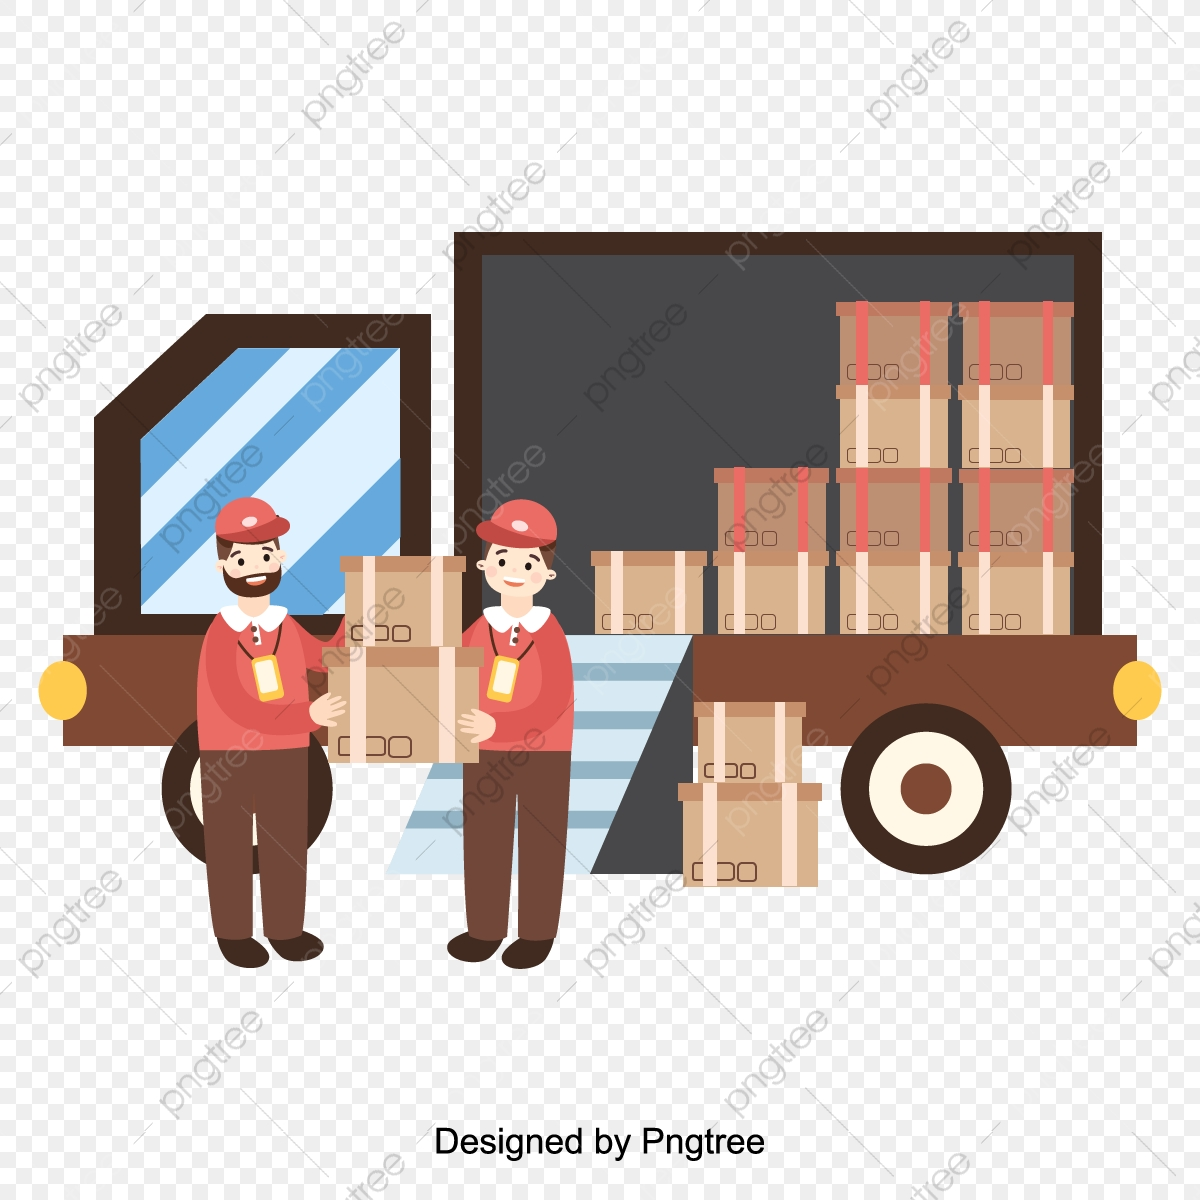 Flat Express Delivery Service Illustration, Delayering, Courier, Delivery  Work PNG and Vector with Transparent Background for Free Download